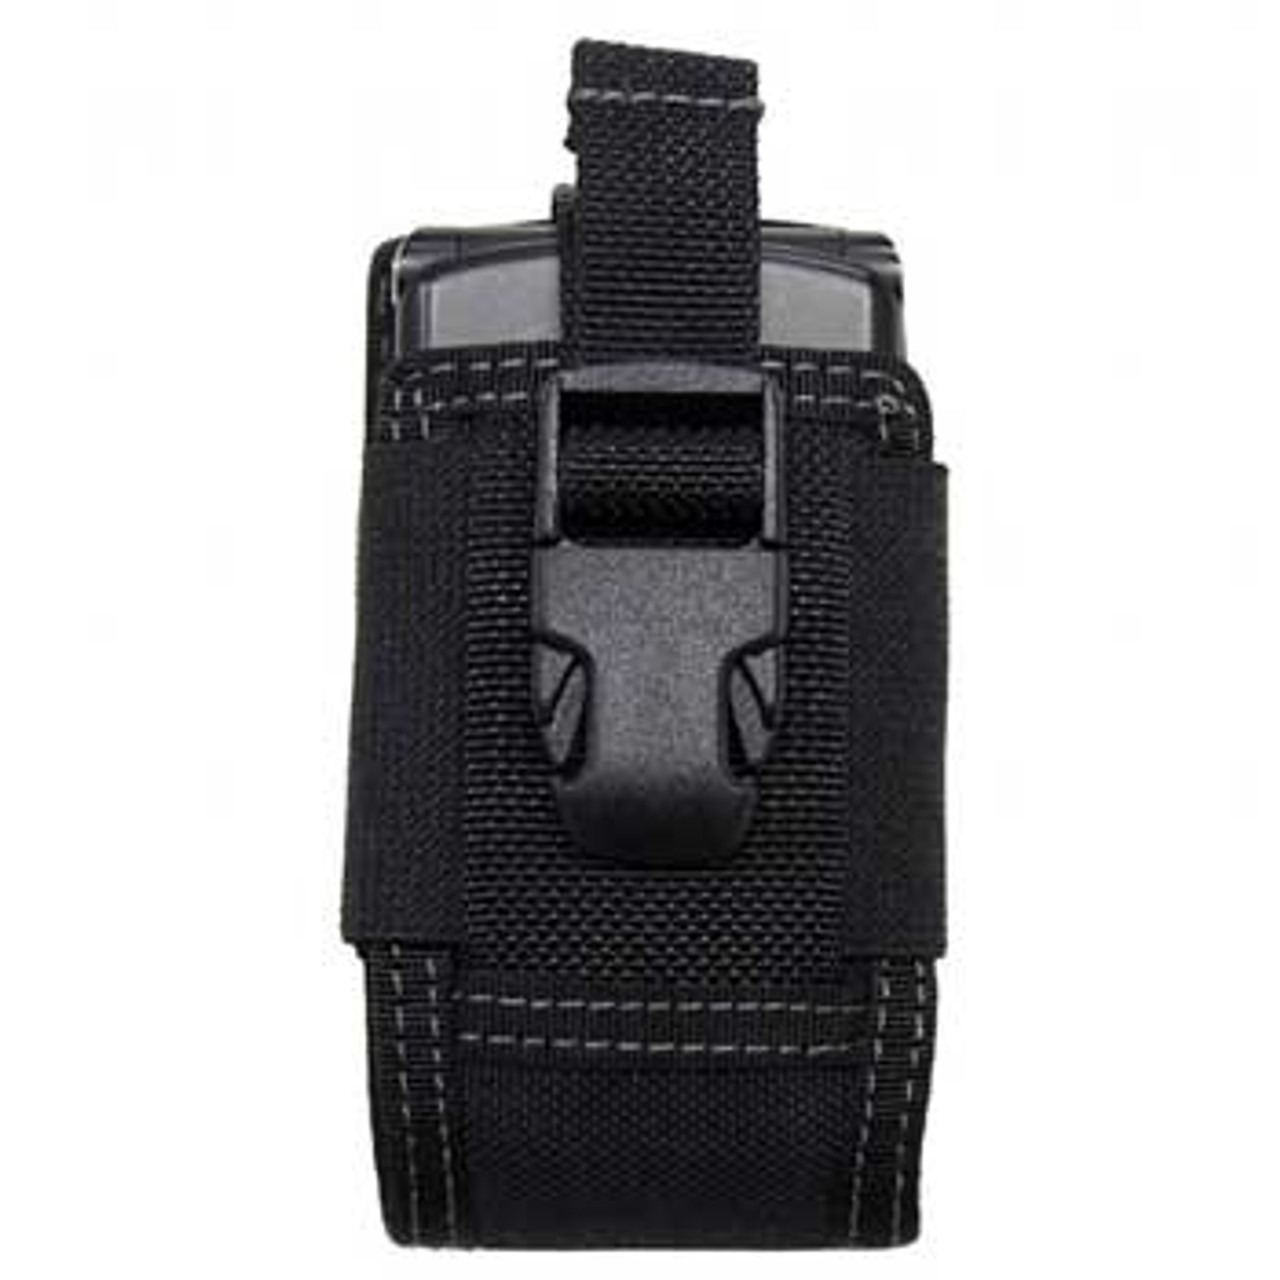 Maxpedition 4 in. Clip on Phone Holster| Color| Khaki